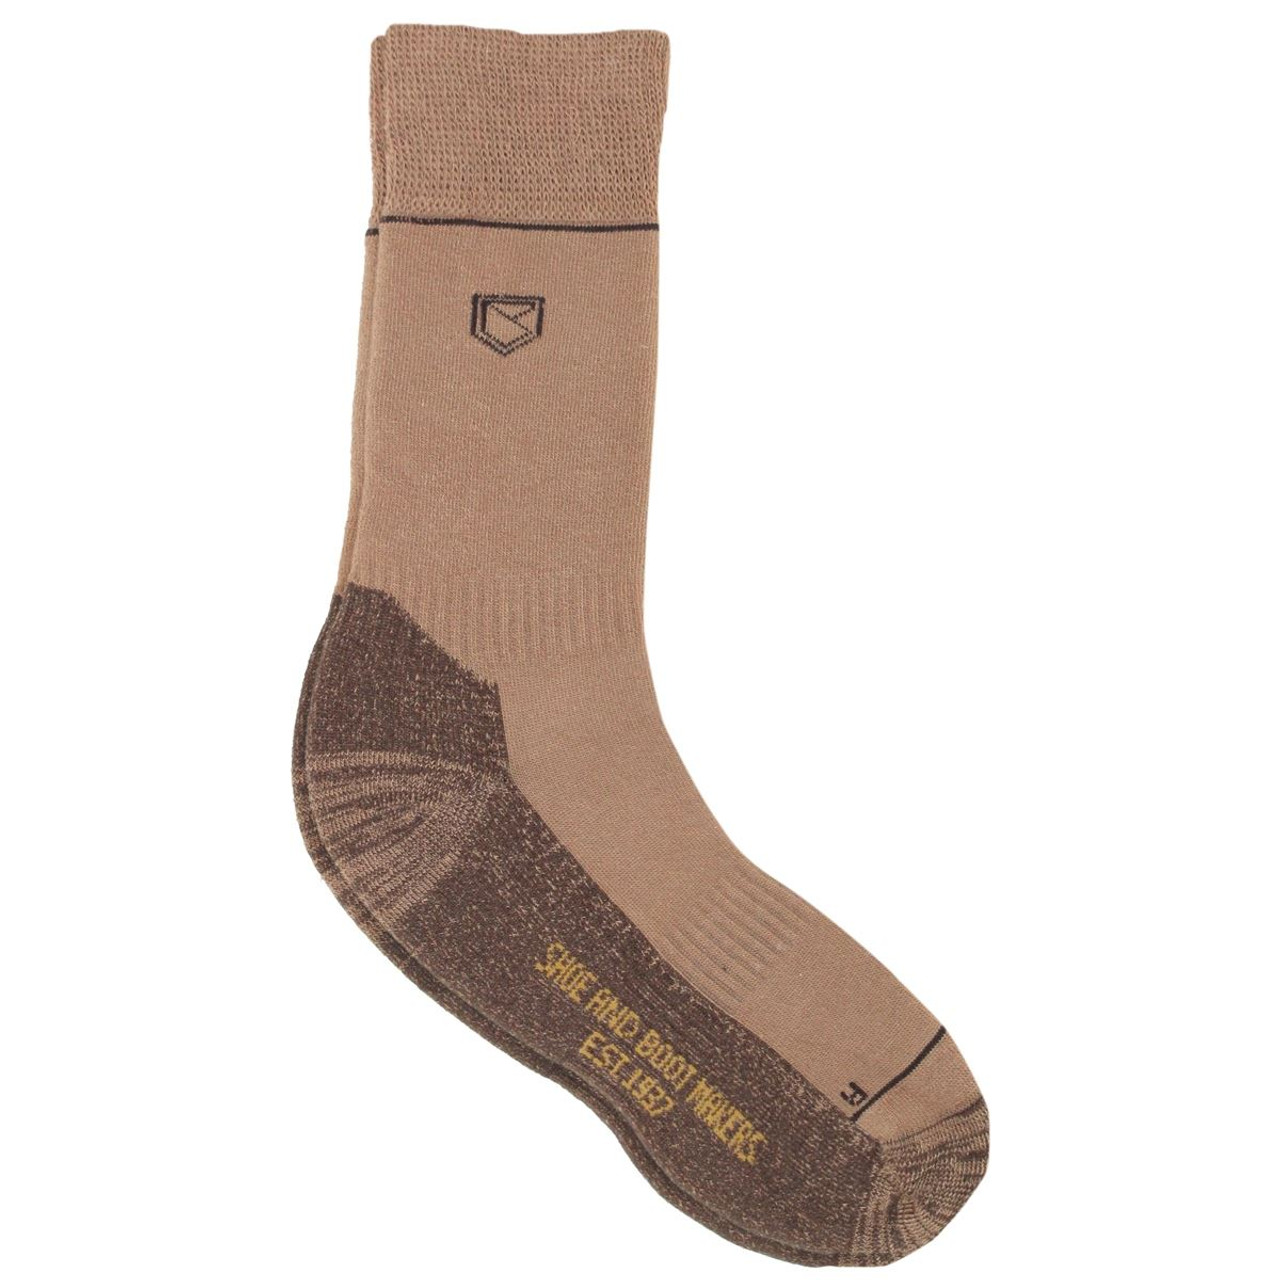 Dubarry Kilkee Short PrimaLoft Socks in Sand